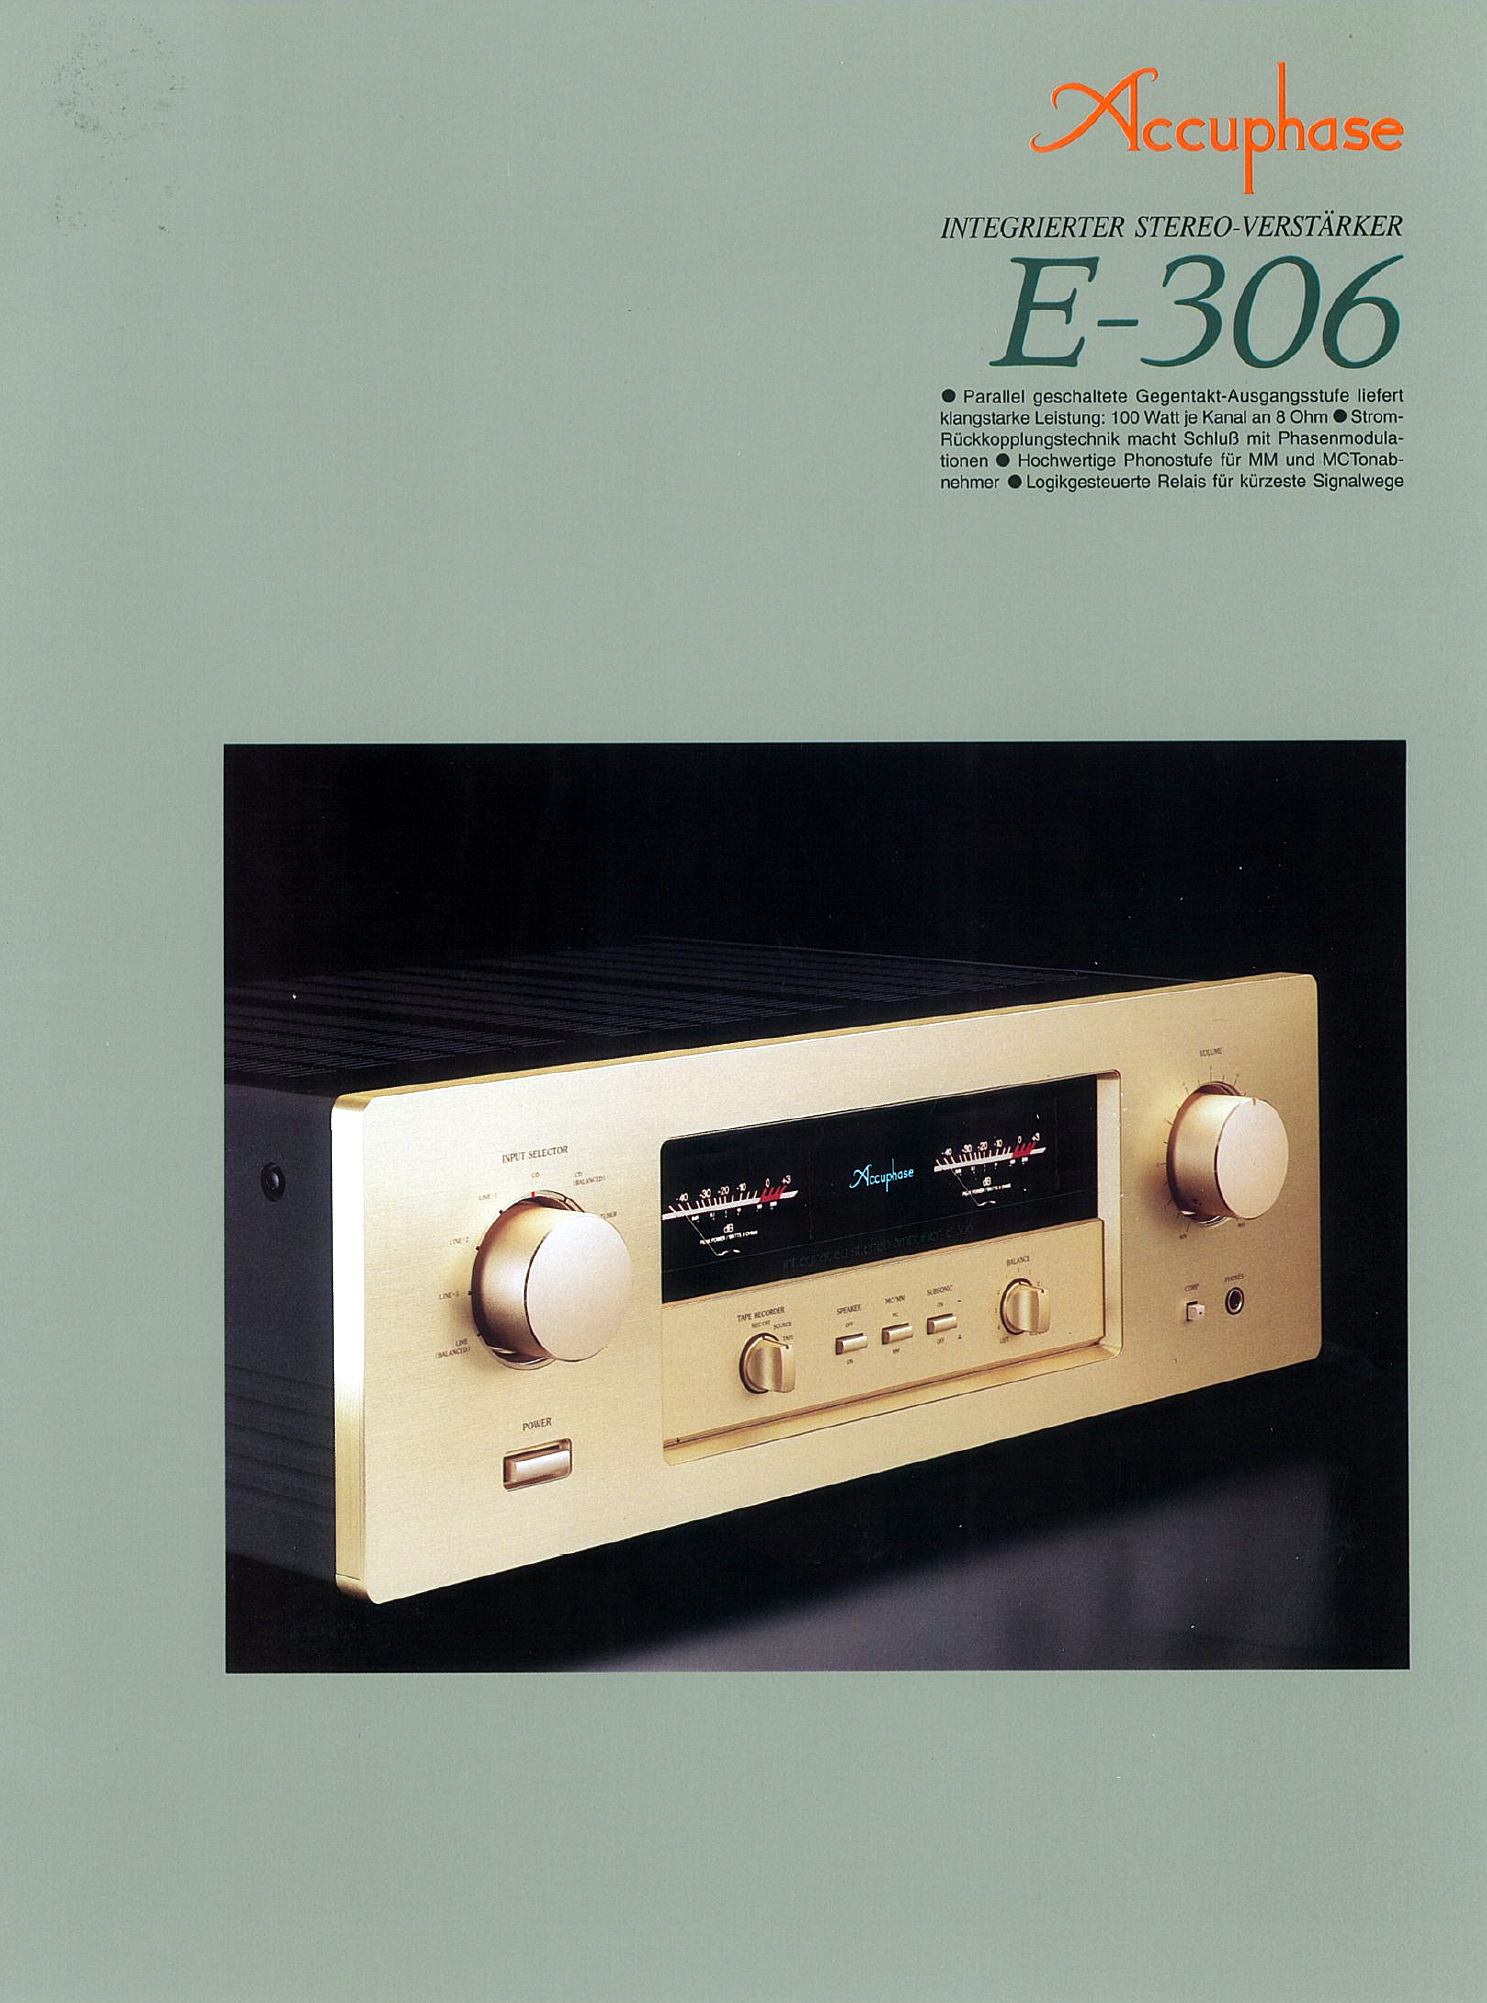 Accuphase E-306-Prospekt-1.jpg